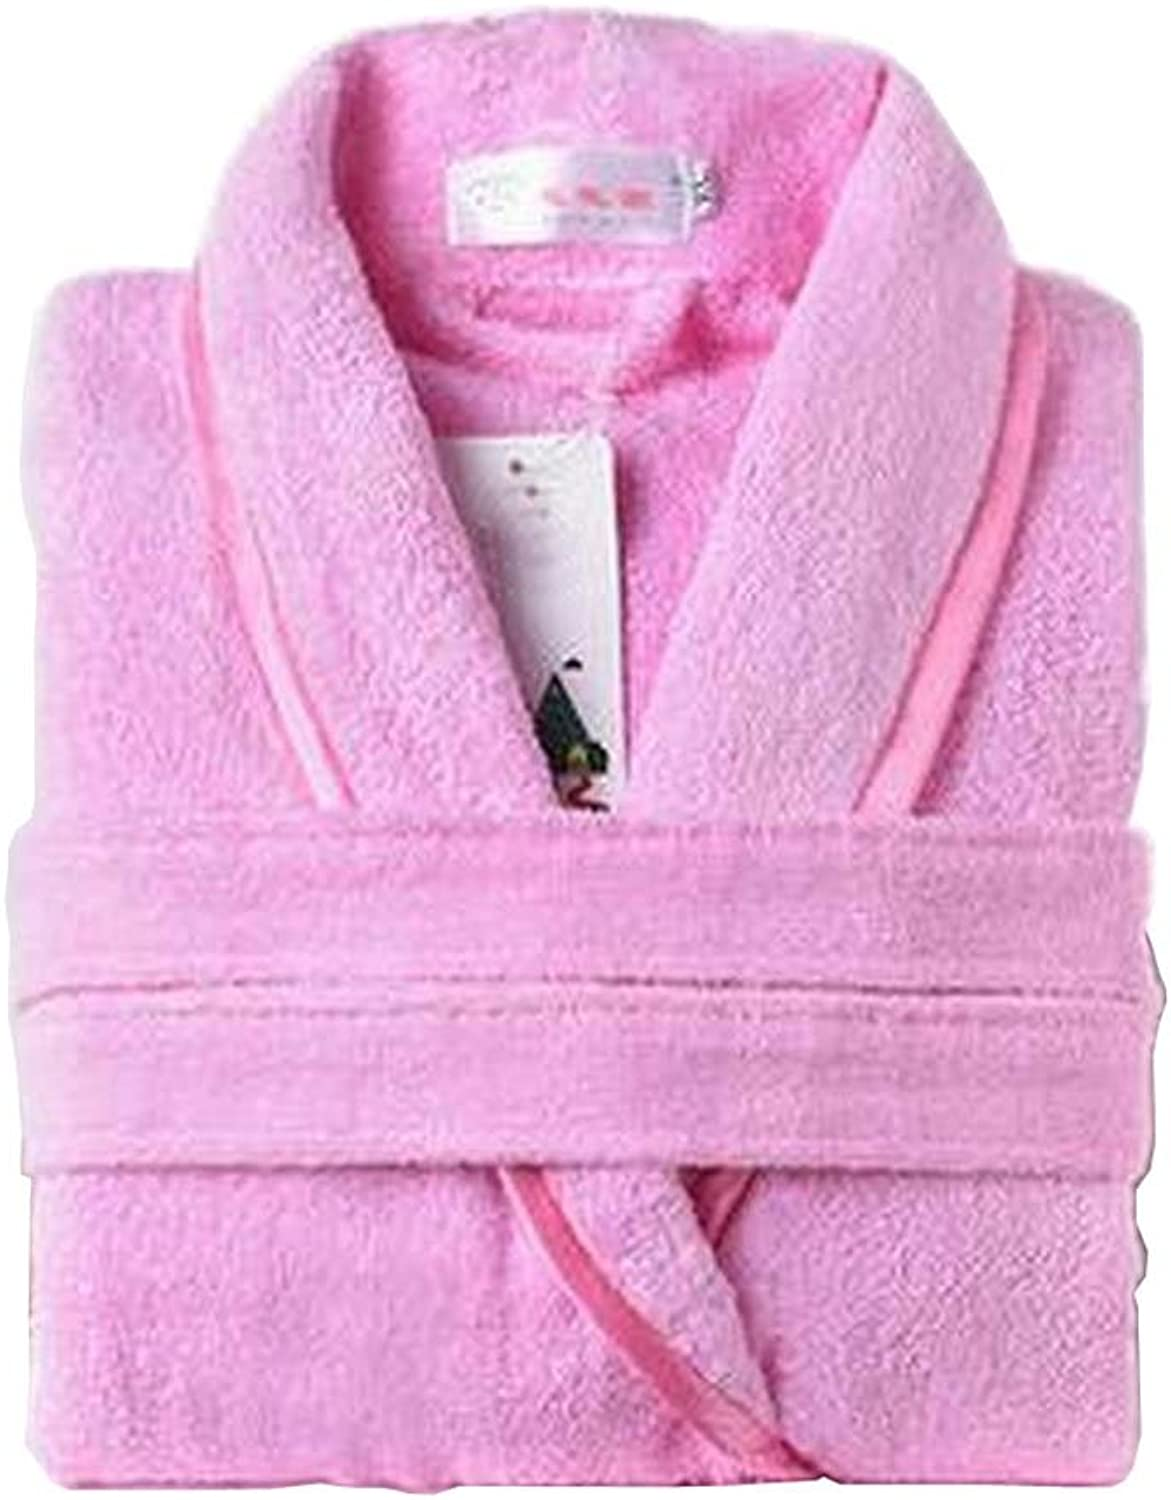 [Pink] Women Cotton Bathrobes Ladies Nightgown Soft Robe for Winter